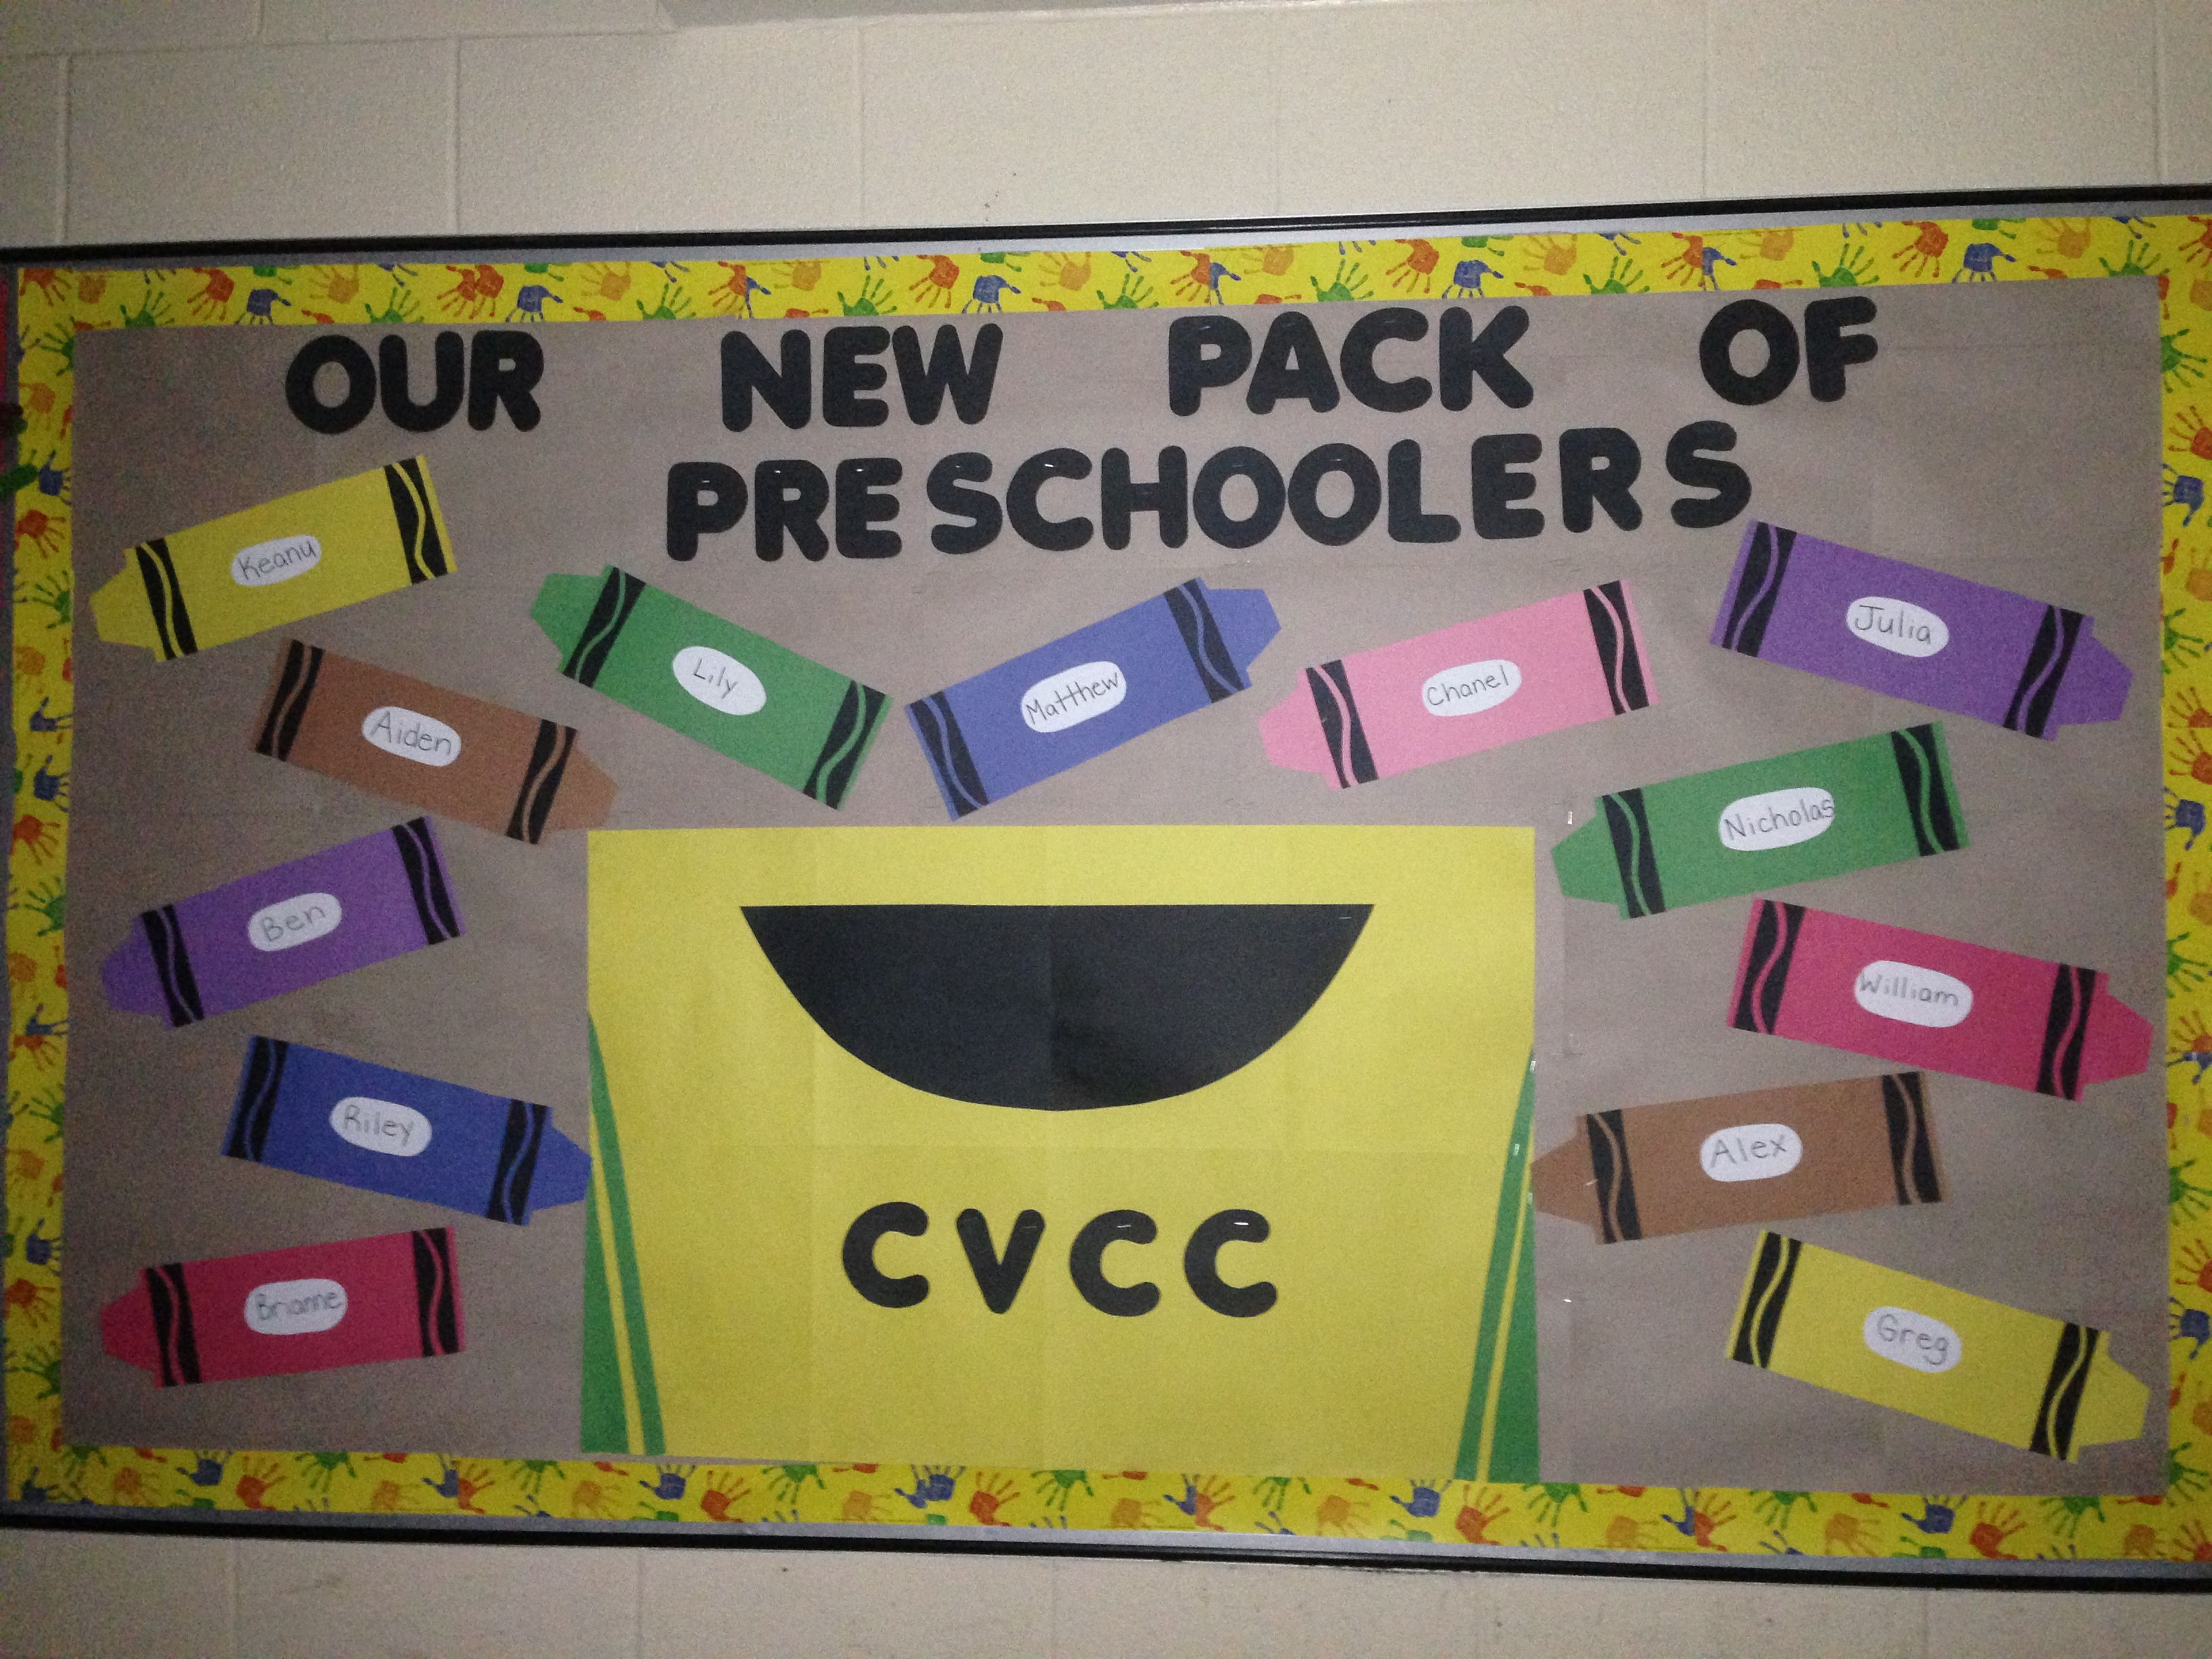 Back to school themed bulletin board. Our new pack of preschoolers :)